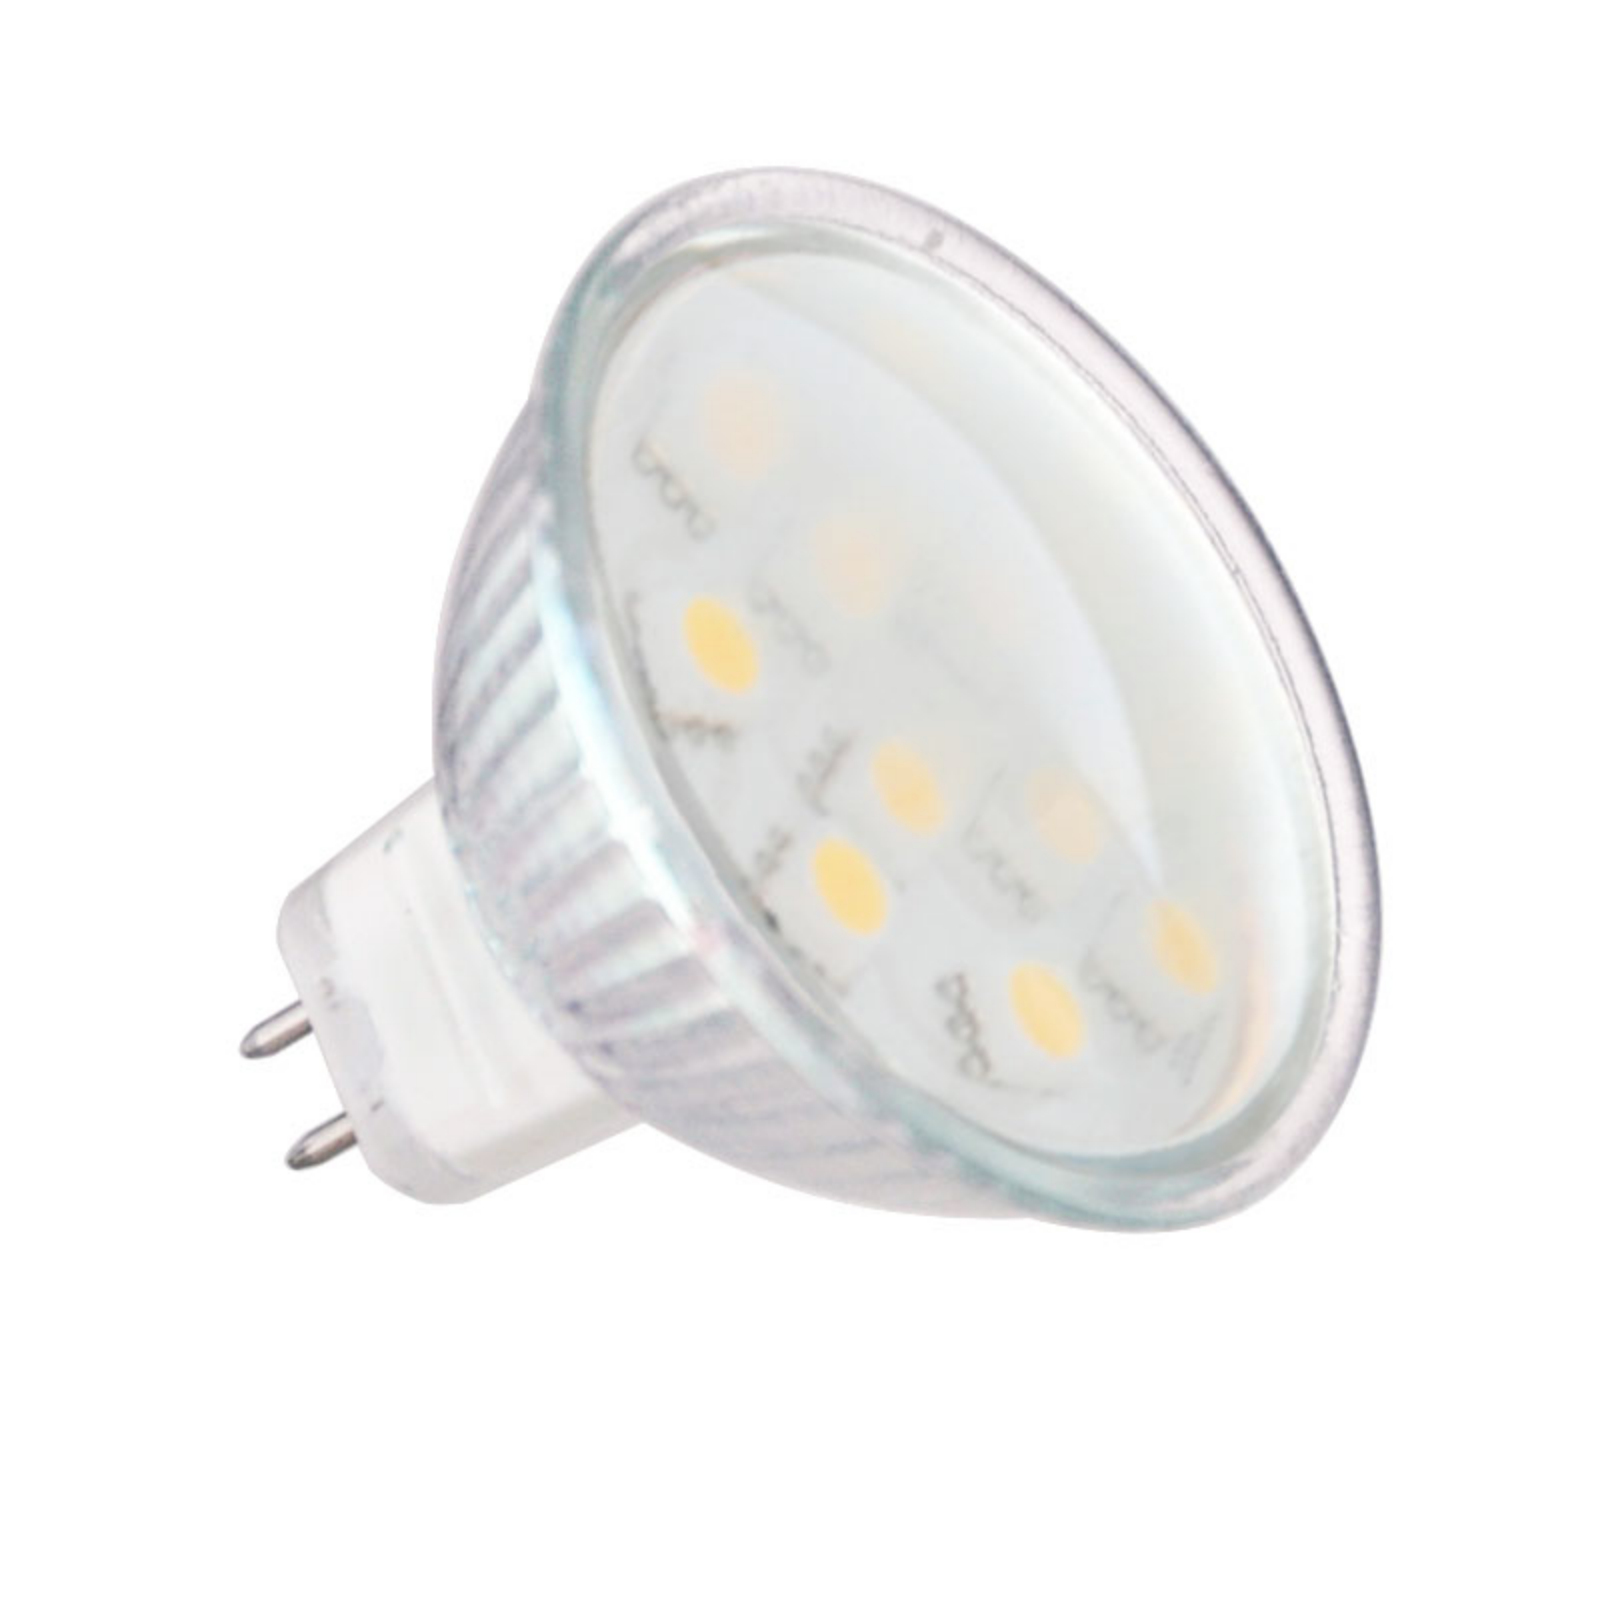 Bo descent bestbenefic led glass w replace halogen tungsten halogen lamp cup spotlight gu5.3 mr16 low voltage 12 v